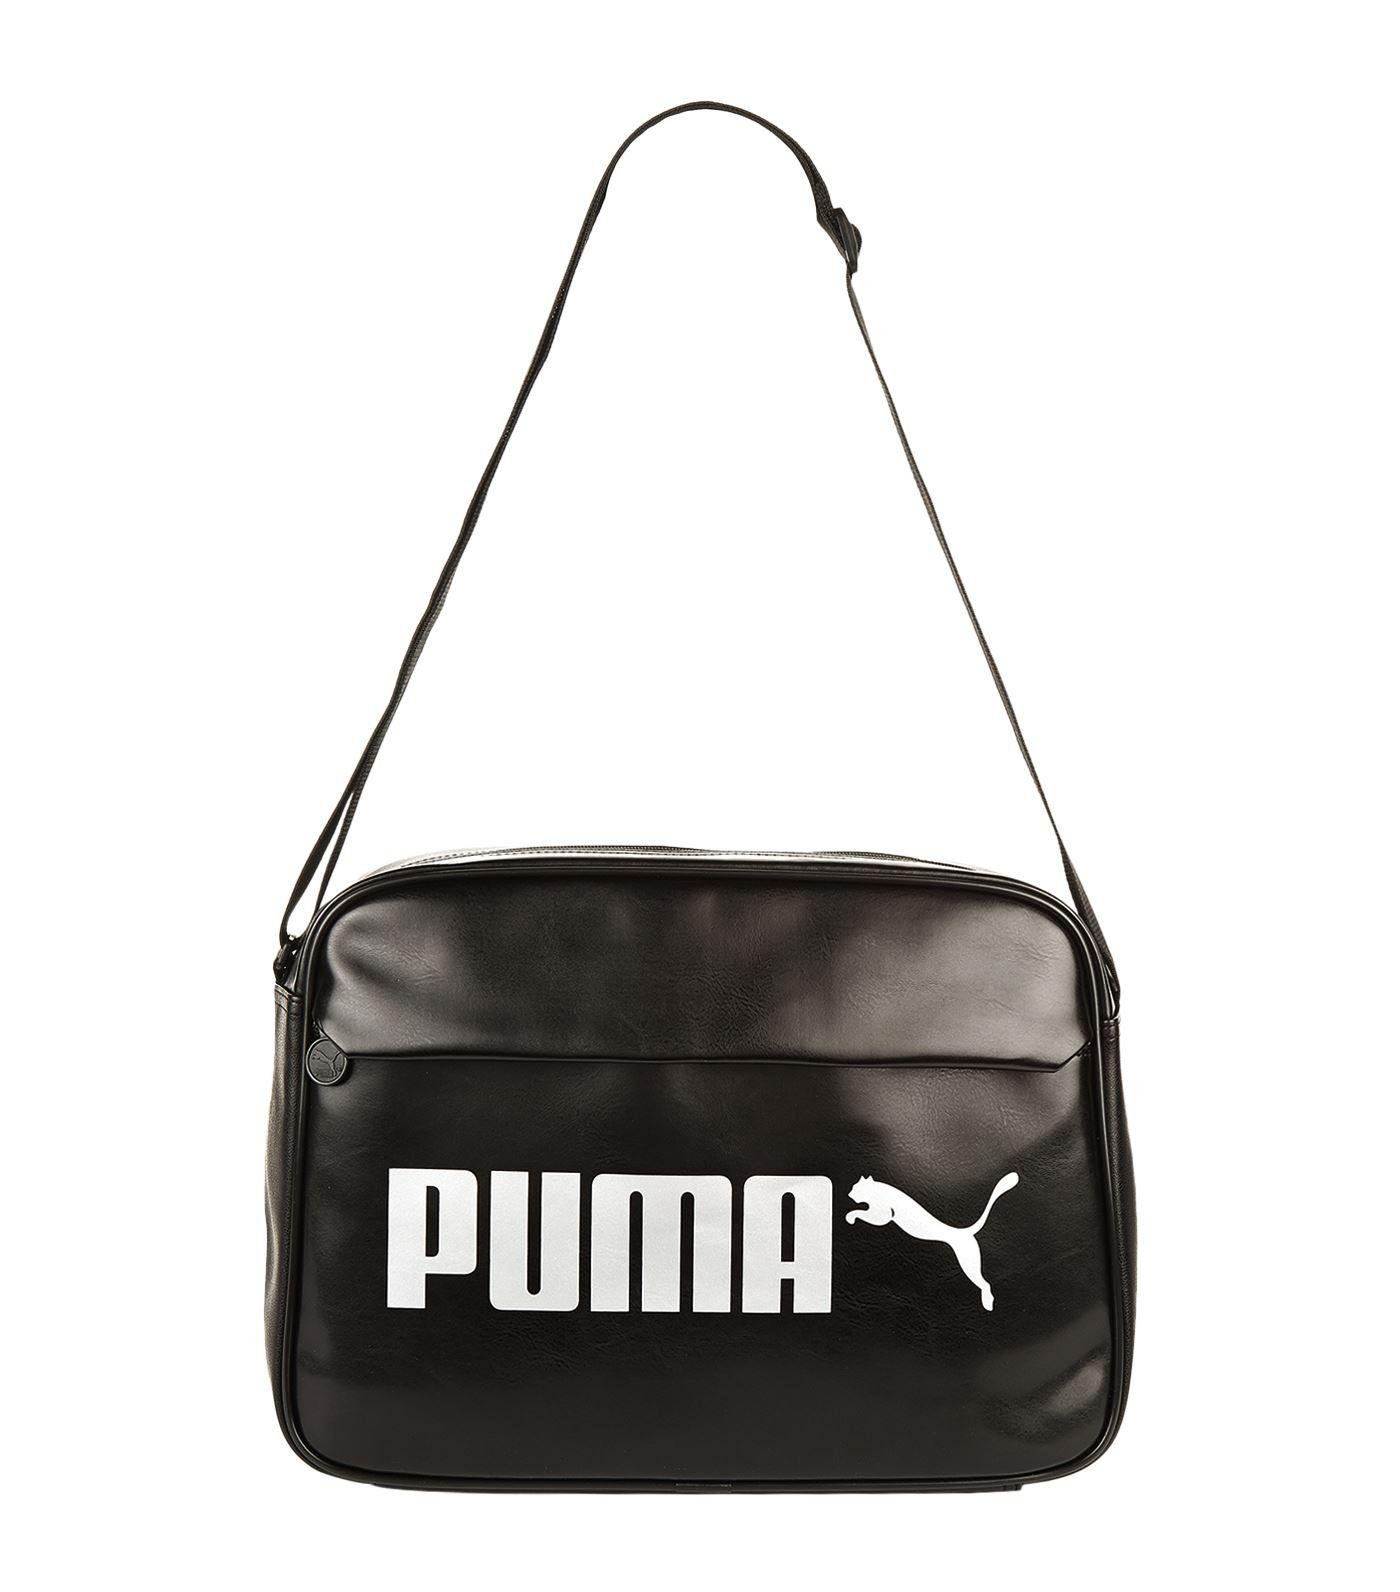 5b9869bb7d Lyst - PUMA Campus Reporter Bag in Black